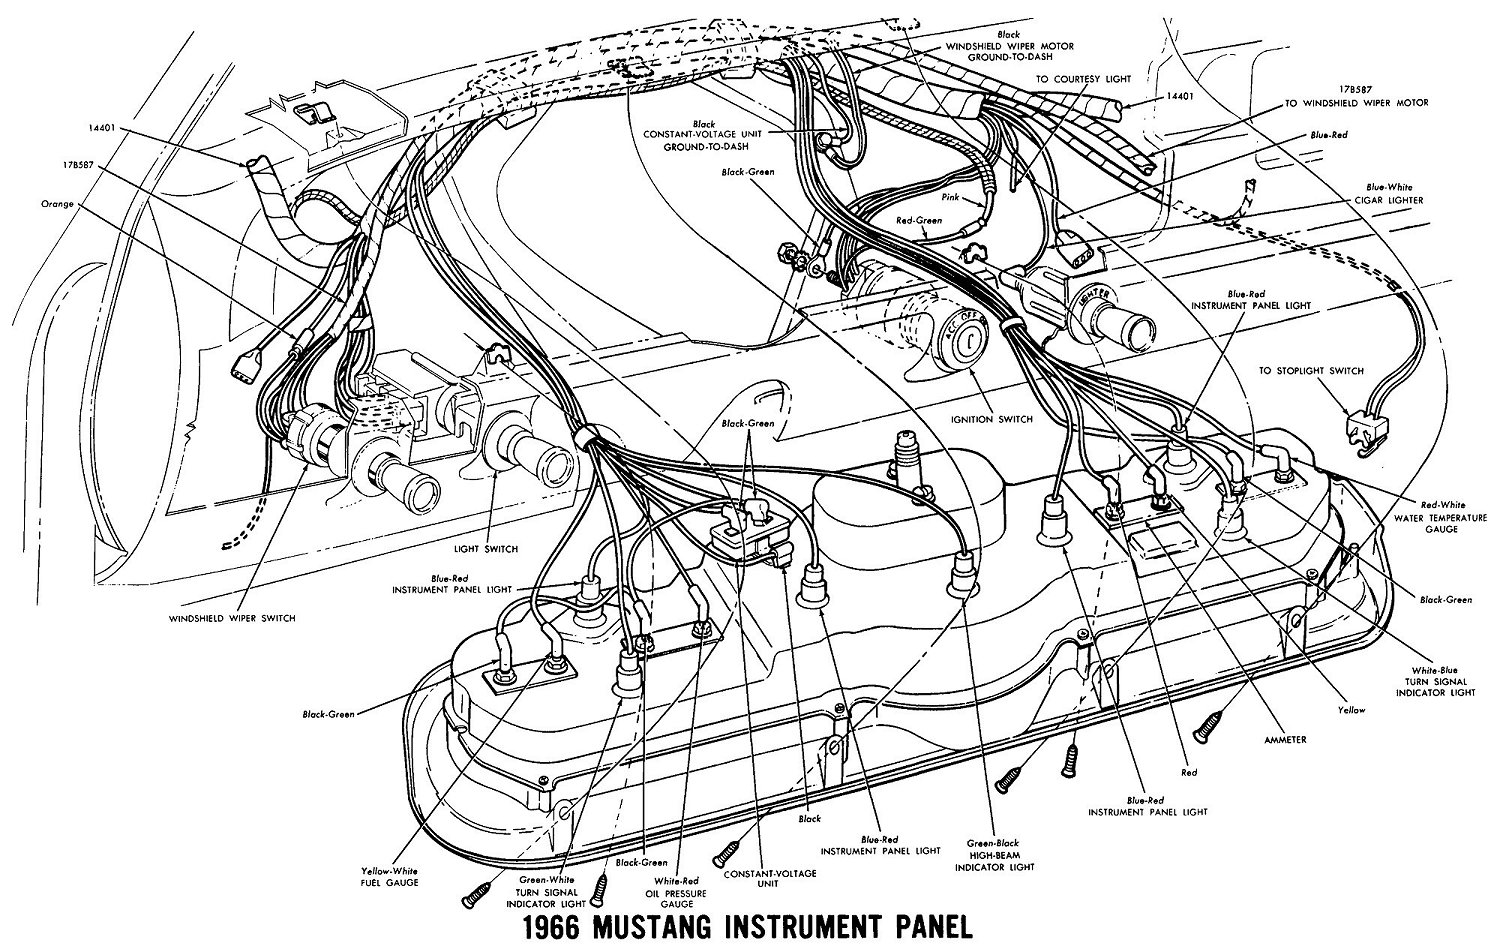 66instr 1966 mustang wiring diagrams average joe restoration 1969 mustang wiring diagram at honlapkeszites.co